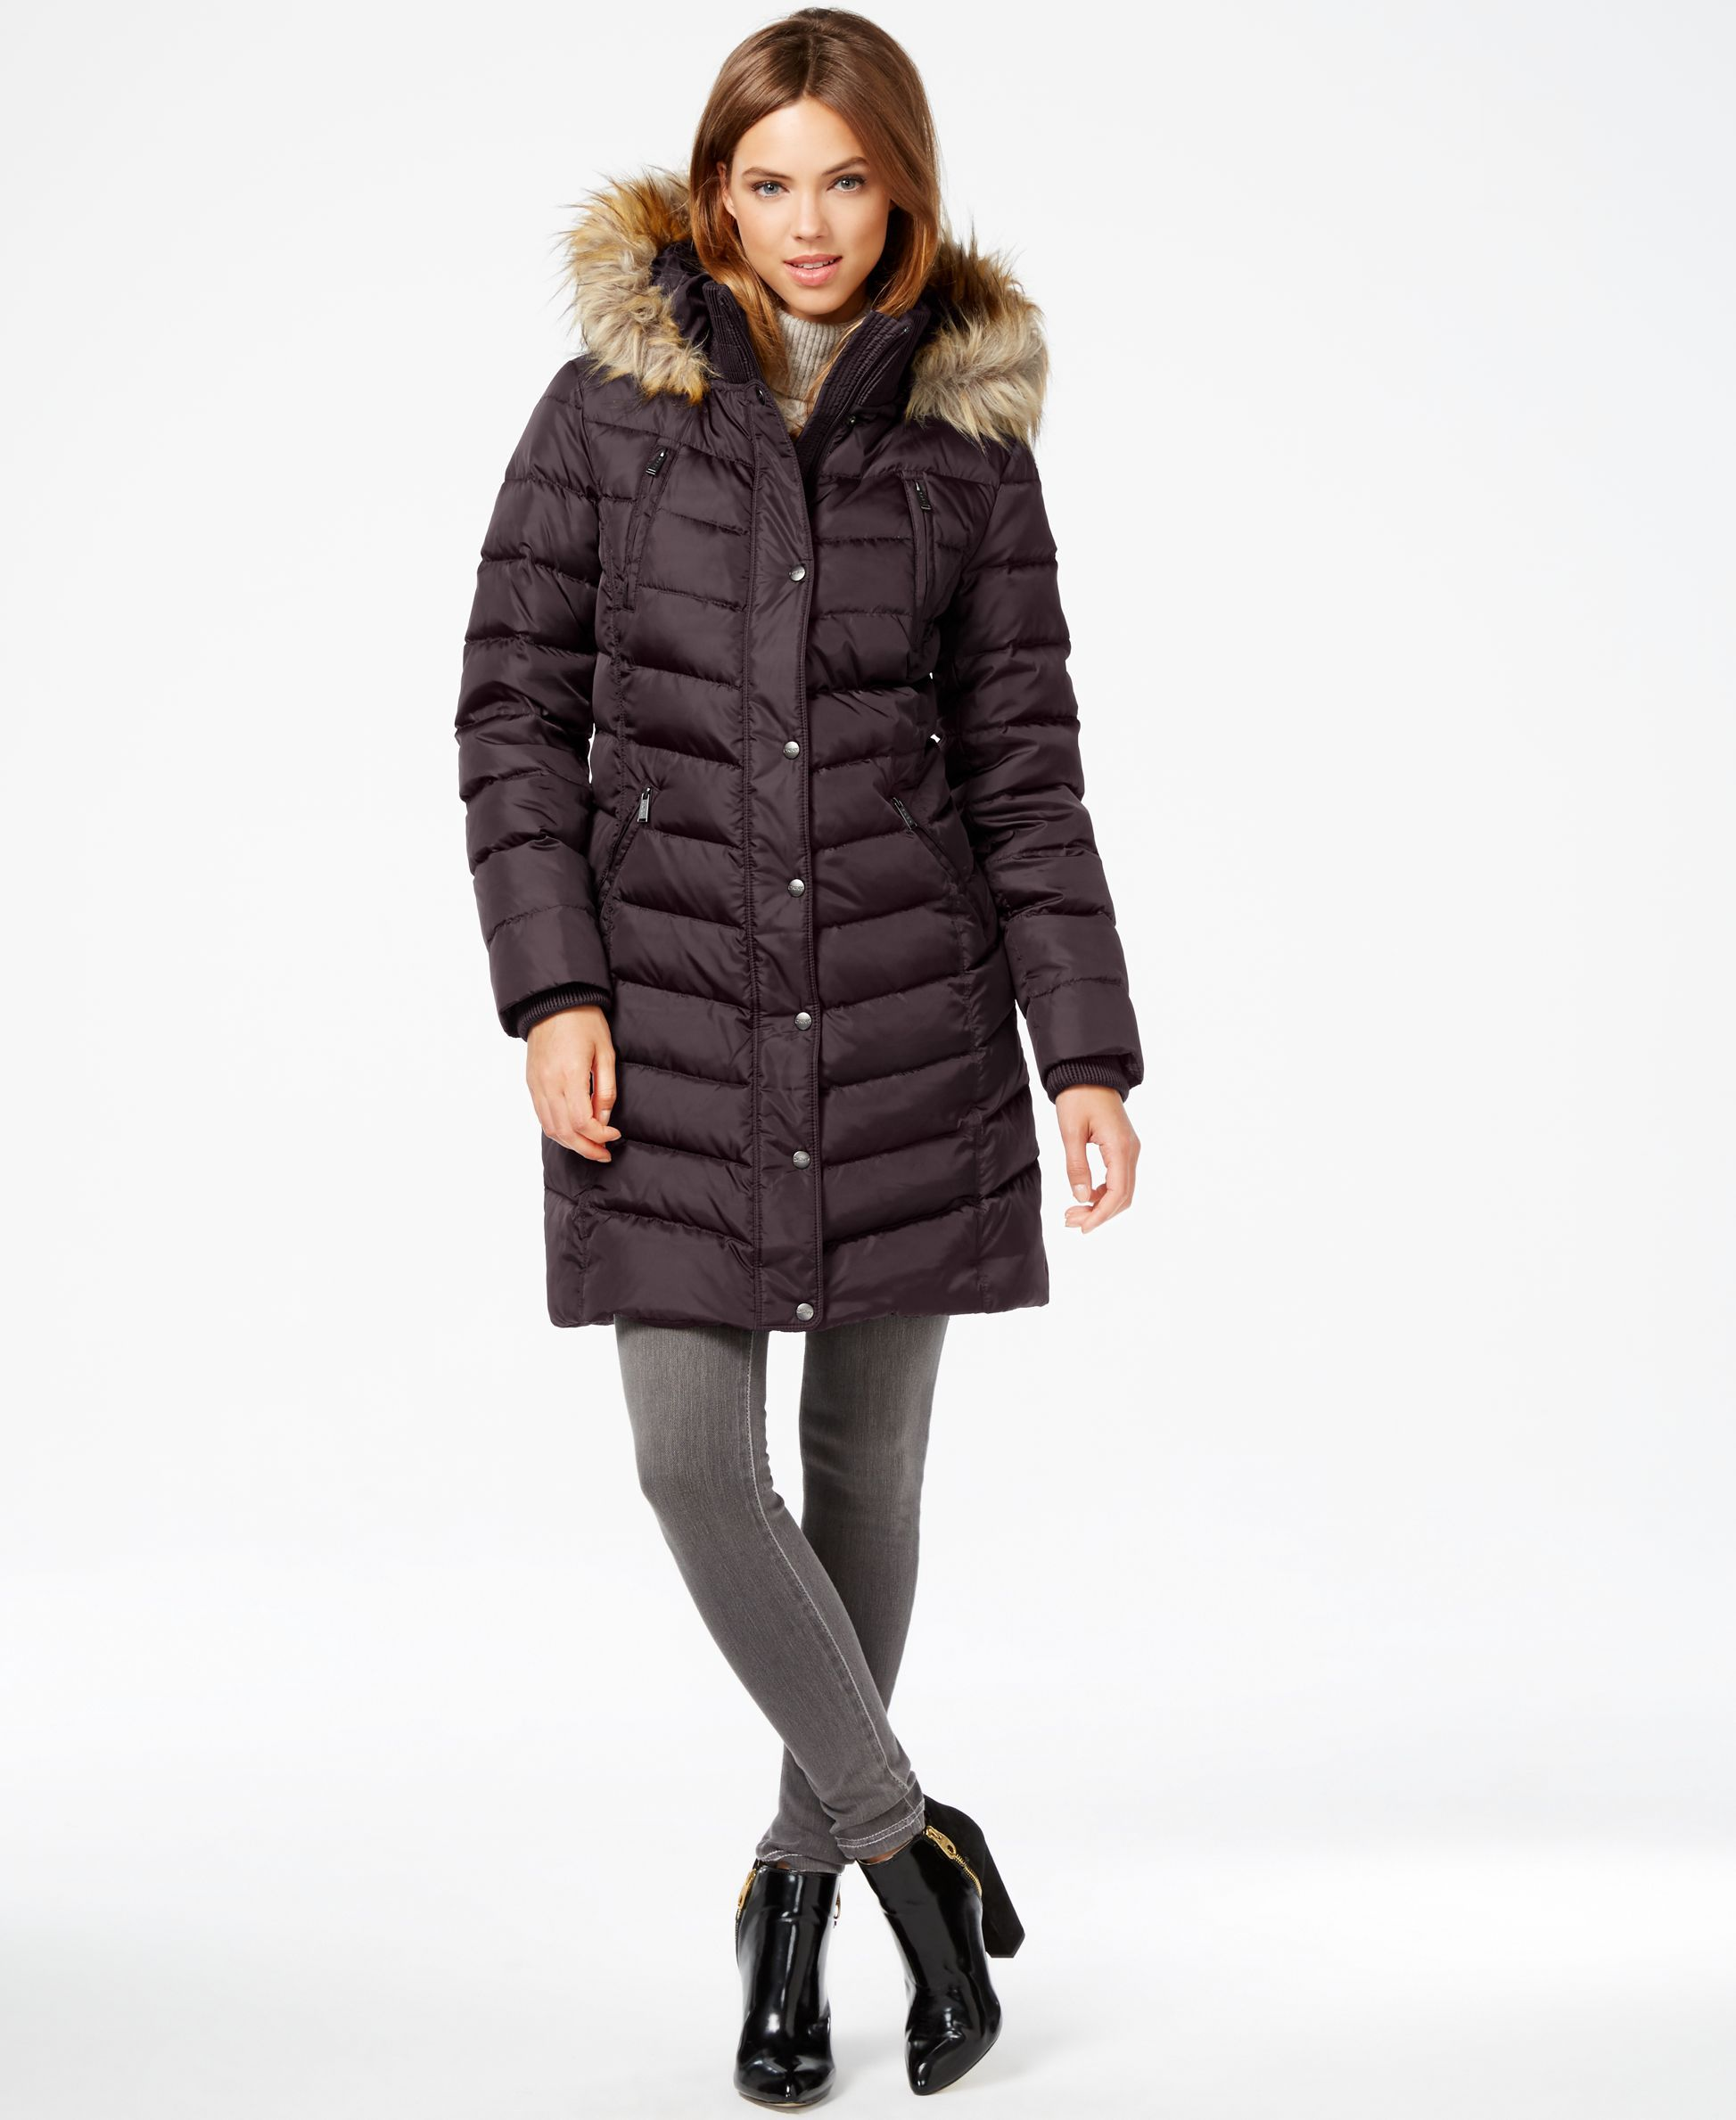 a16341902 Dkny Faux-Fur-Trim Hooded Down Puffer Coat | Products | Down puffer ...